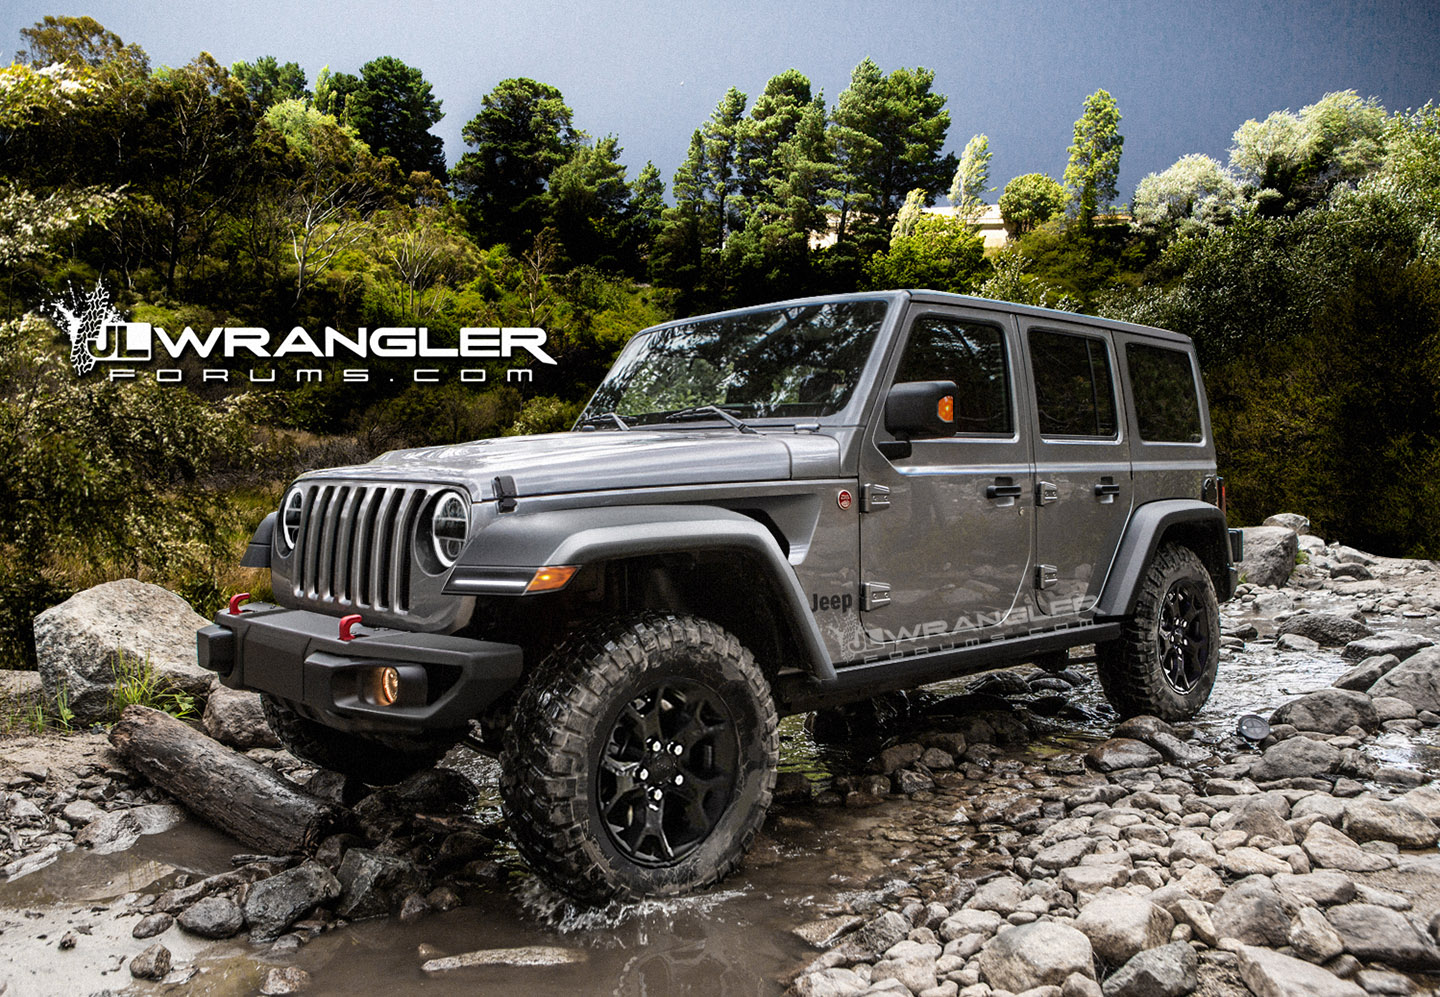 Jeep Wrangler Pickup Truck 2017 >> Renderings: New Jeep Wrangler JLU Brought to Life | 2018+ Jeep Wrangler Forums (JL / JT ...